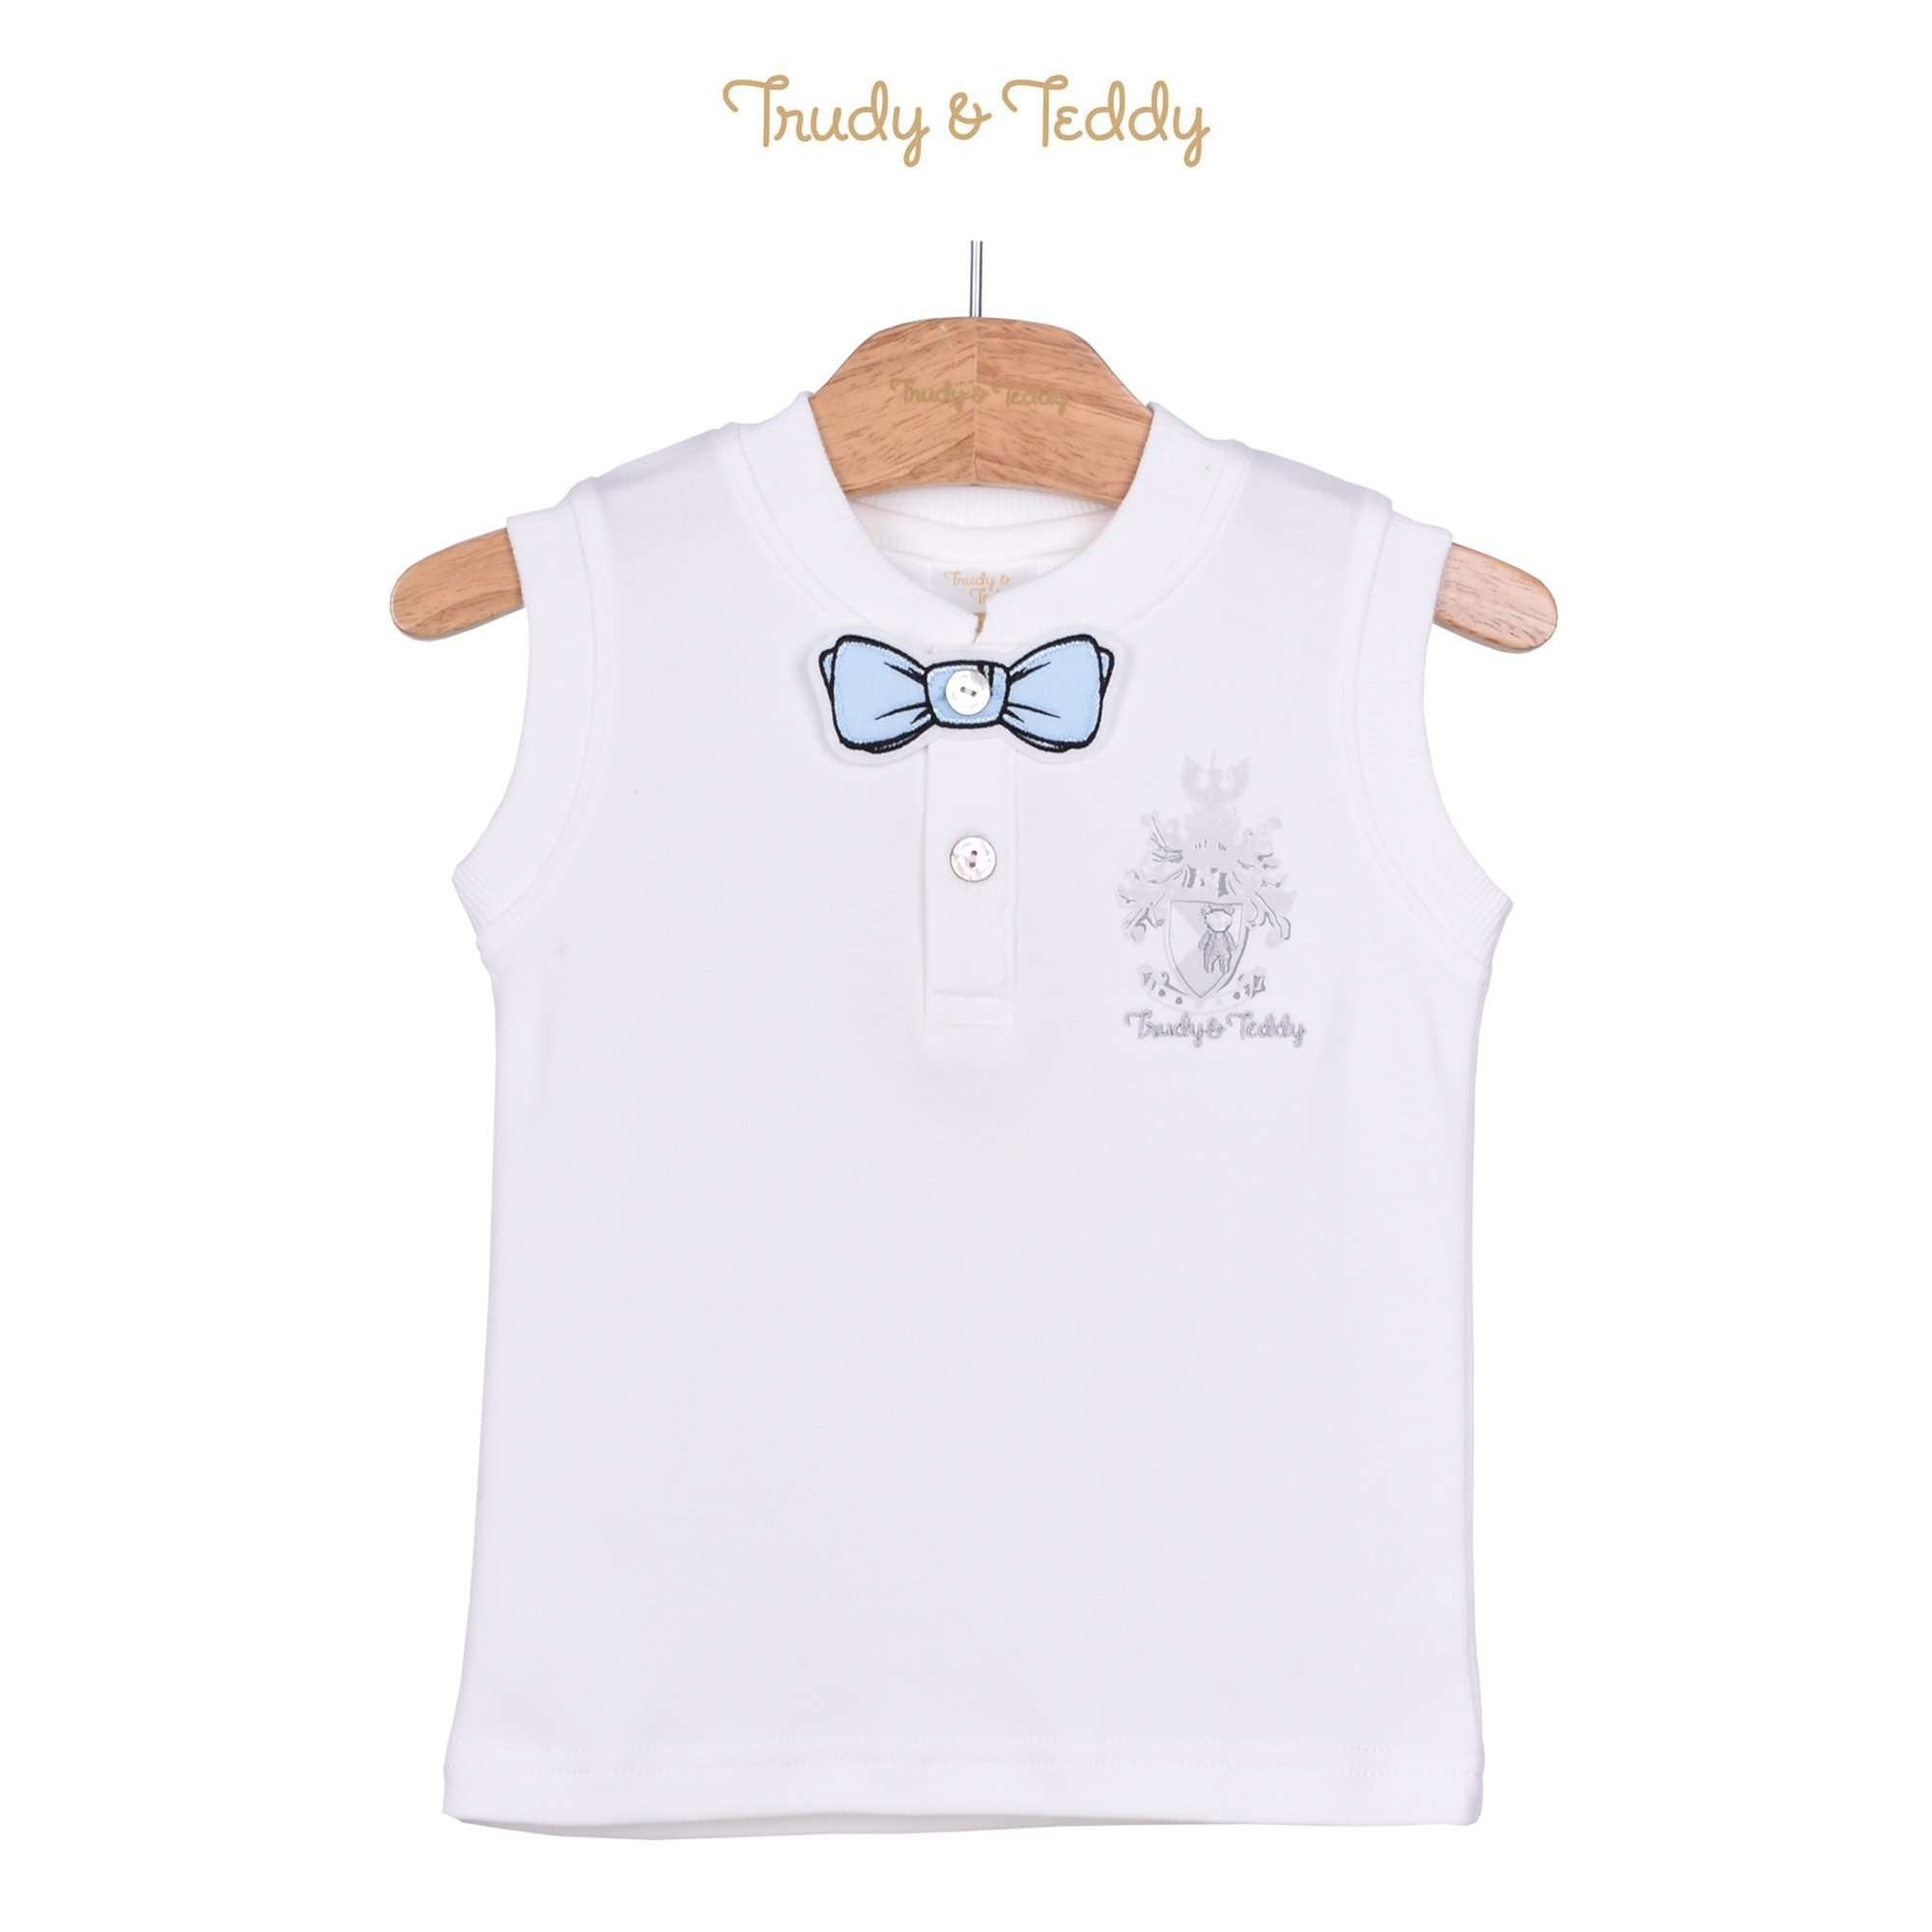 Trudy & Teddy Toddler Boy Sleeveless Tee - Off White 815150-101 : Buy Trudy & Teddy online at CMG.MY